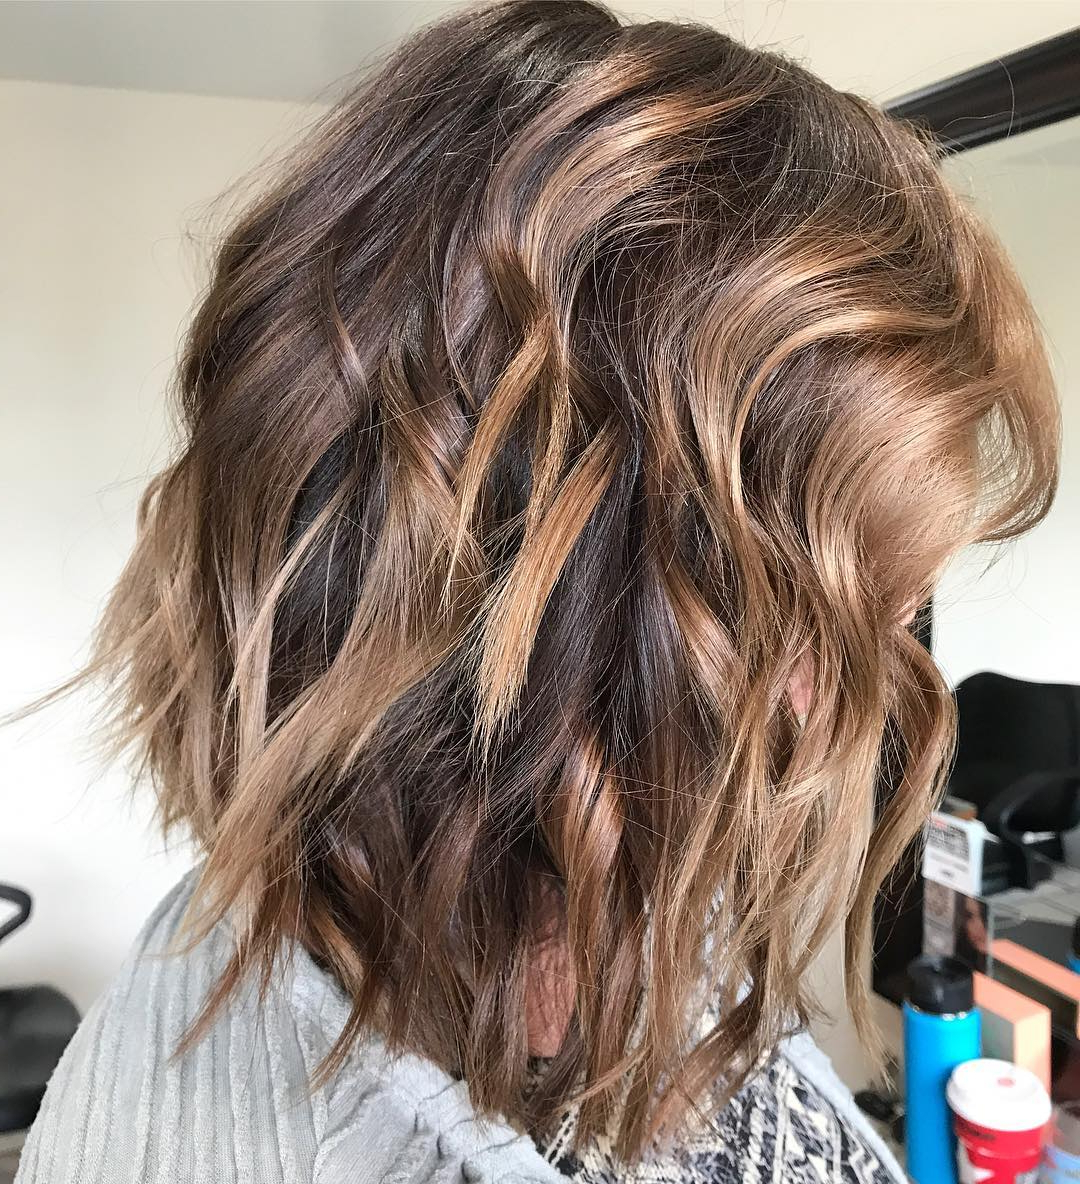 10 Wavy Shoulder Length Hairstyles 2019 Regarding Well Liked Messy Medium Haircuts For Women (View 3 of 20)